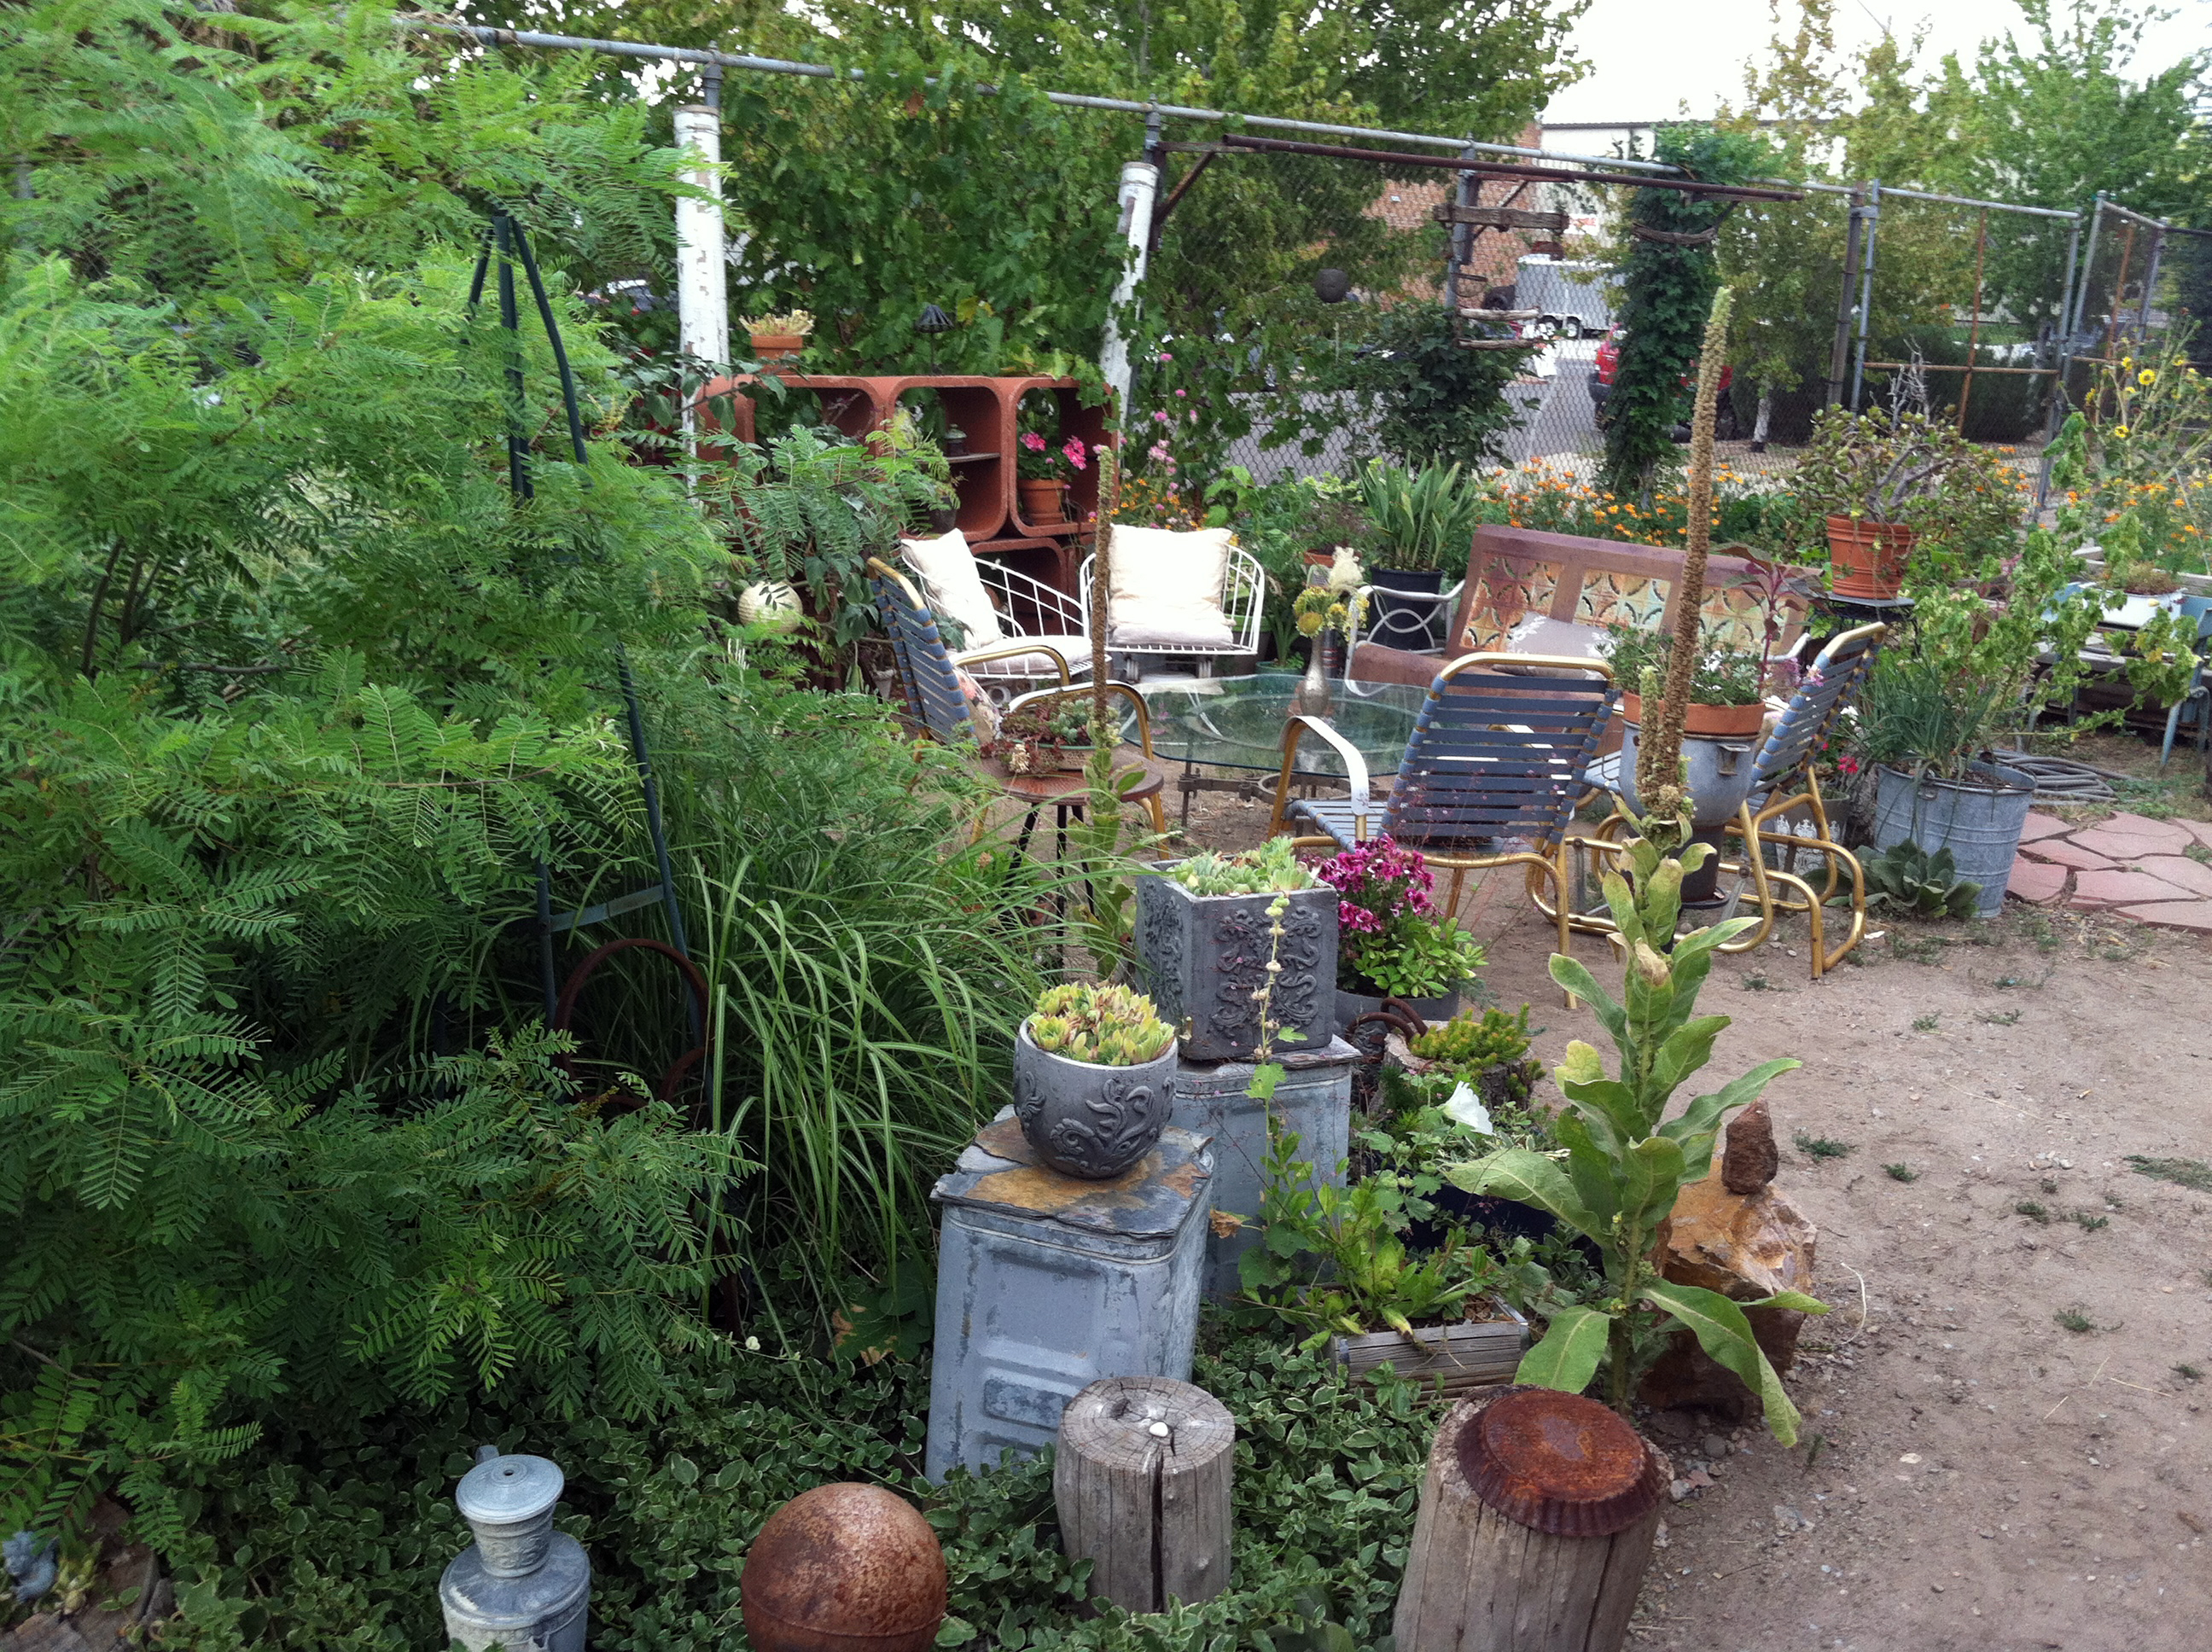 An Industrial Found-Object Garden Delights! More Fun Ideas to Steal ...